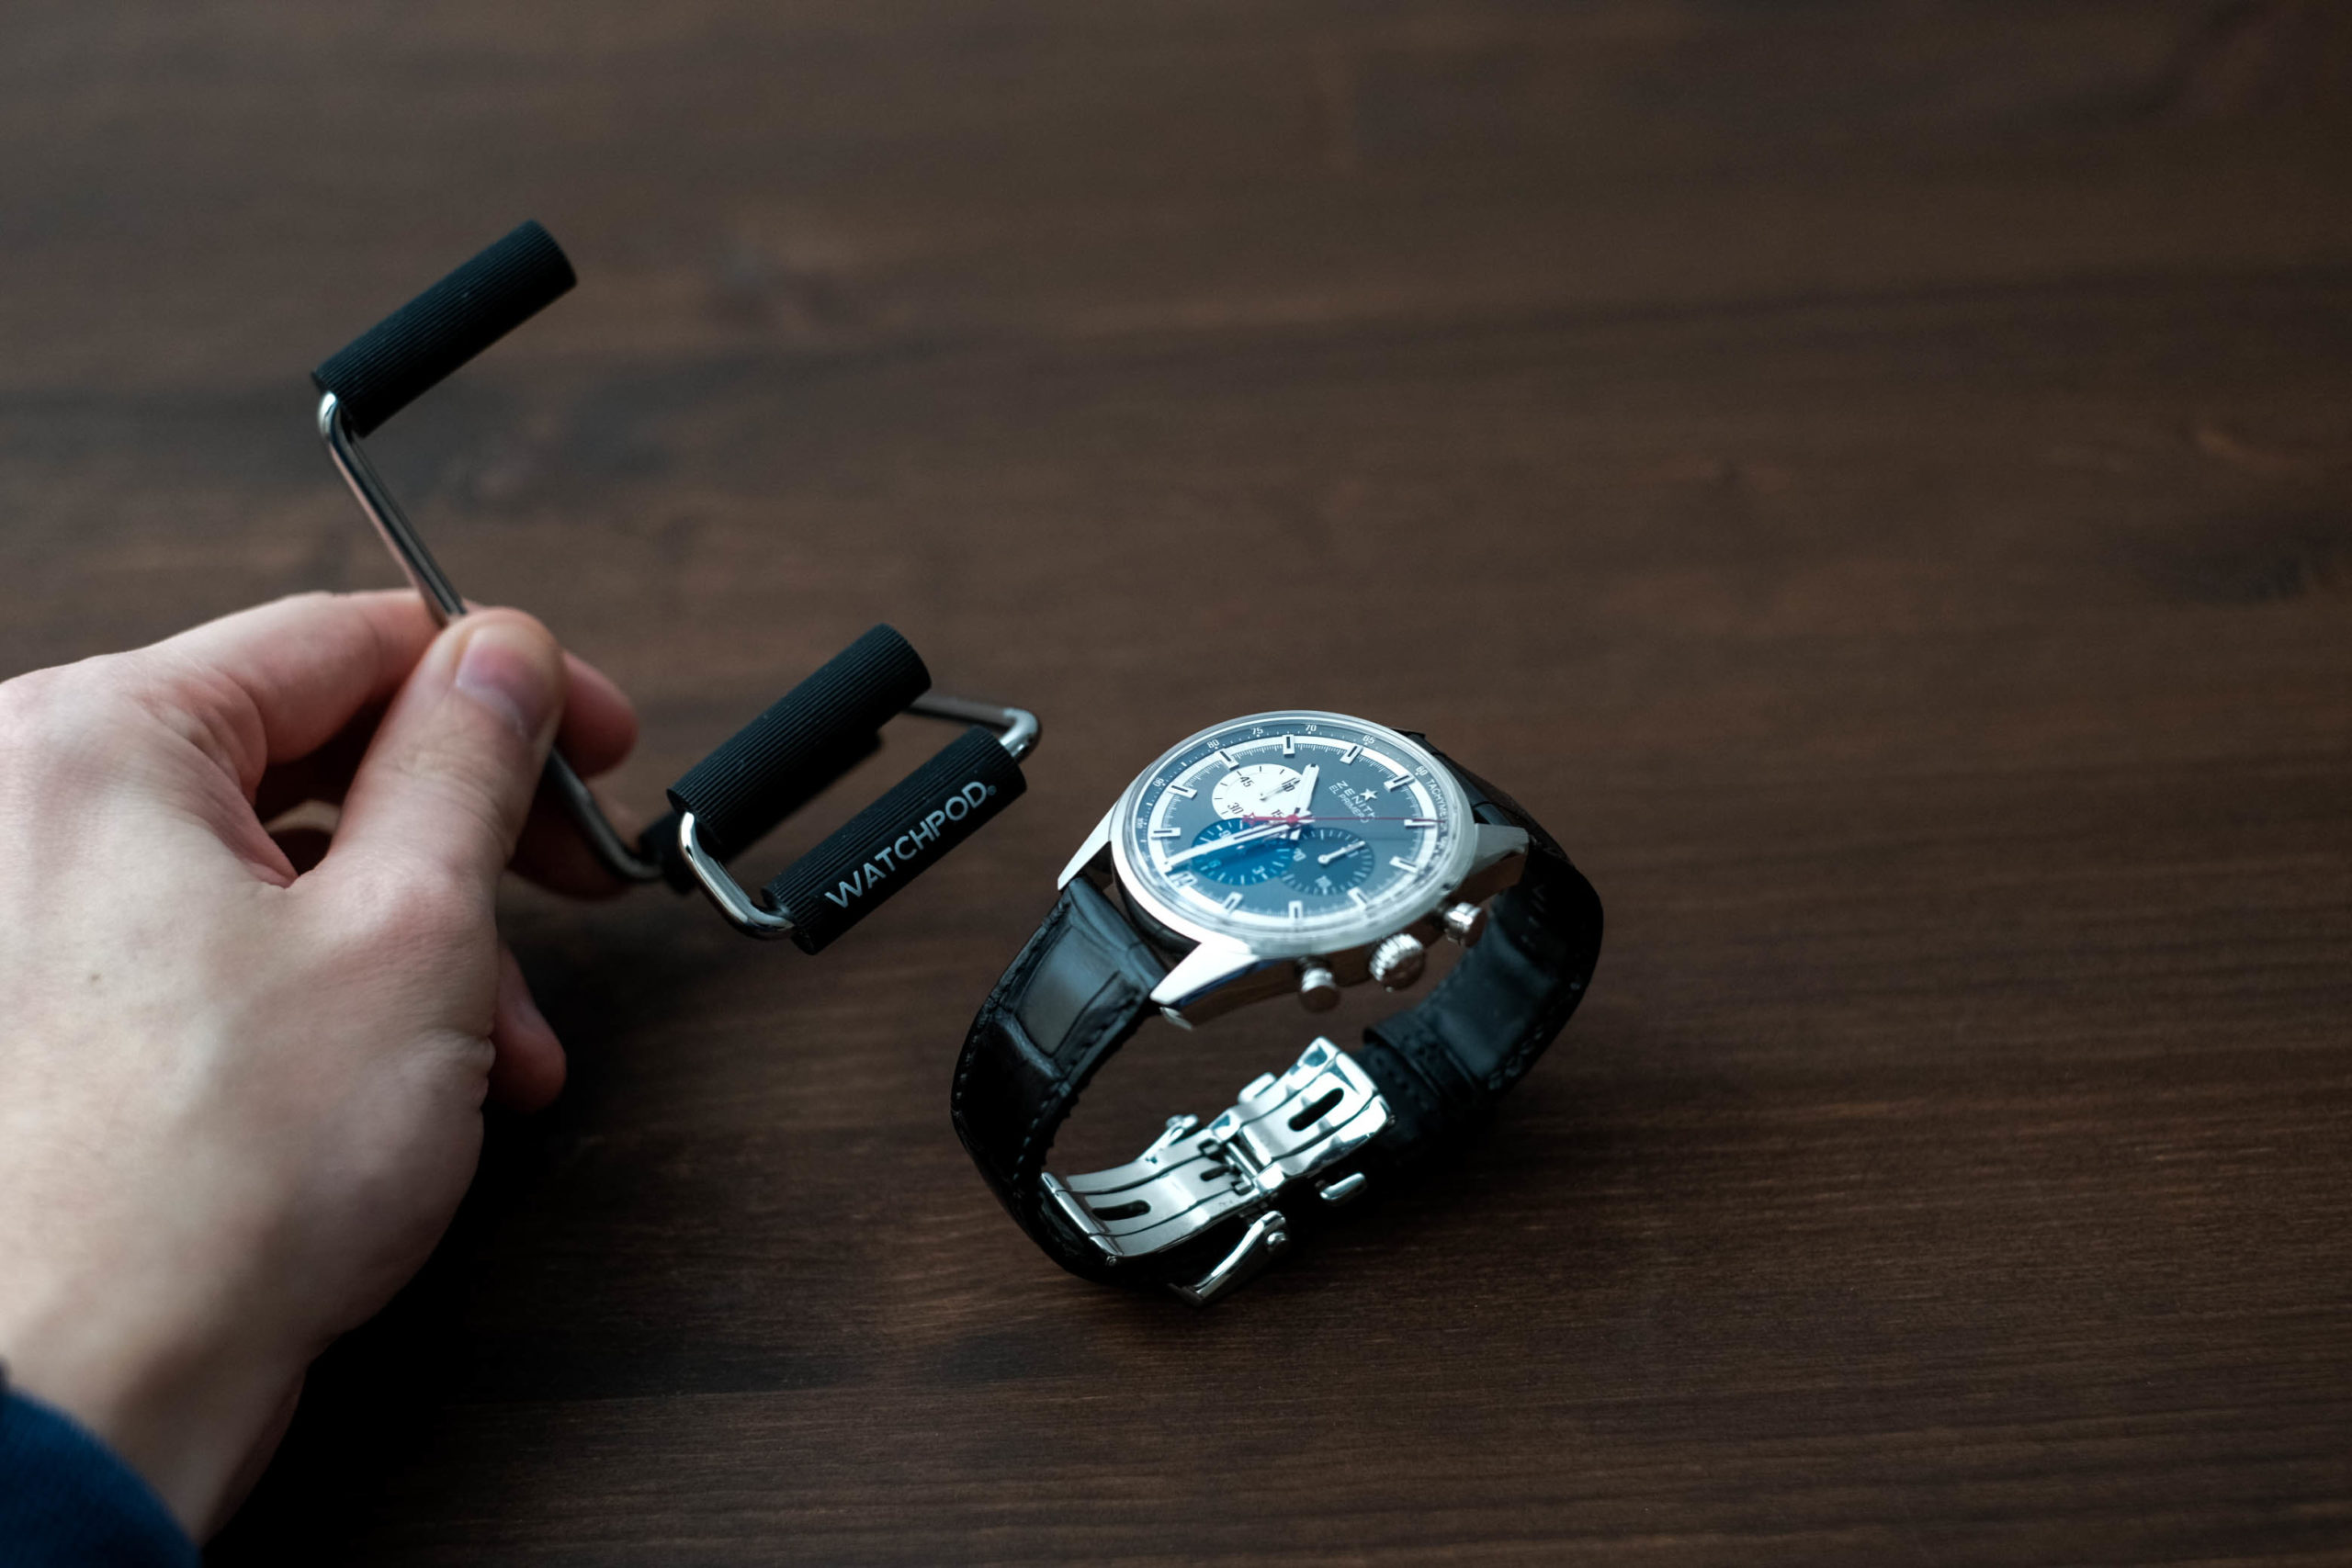 WATCHPOD Display Stand With the El Primero